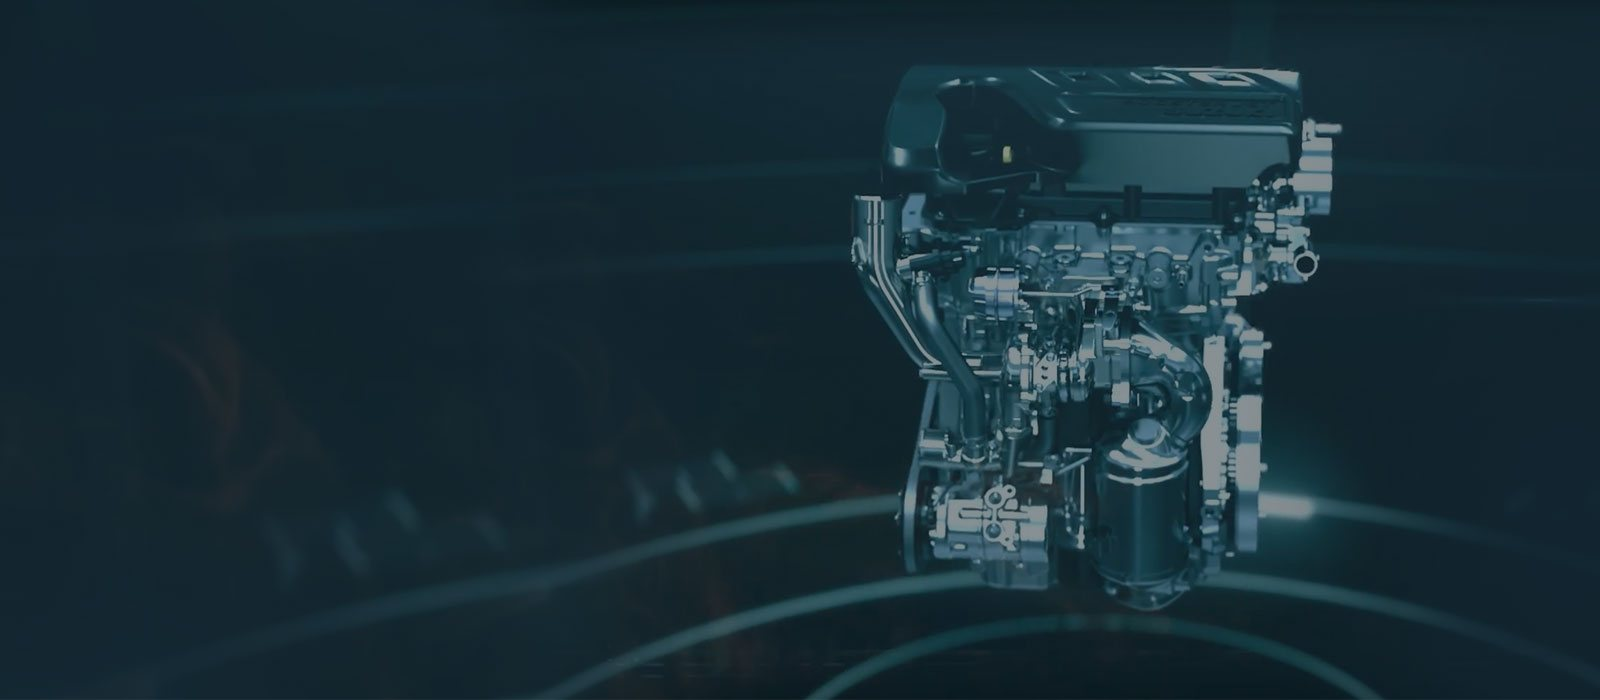 Baleno RS Video - Power to Thrill